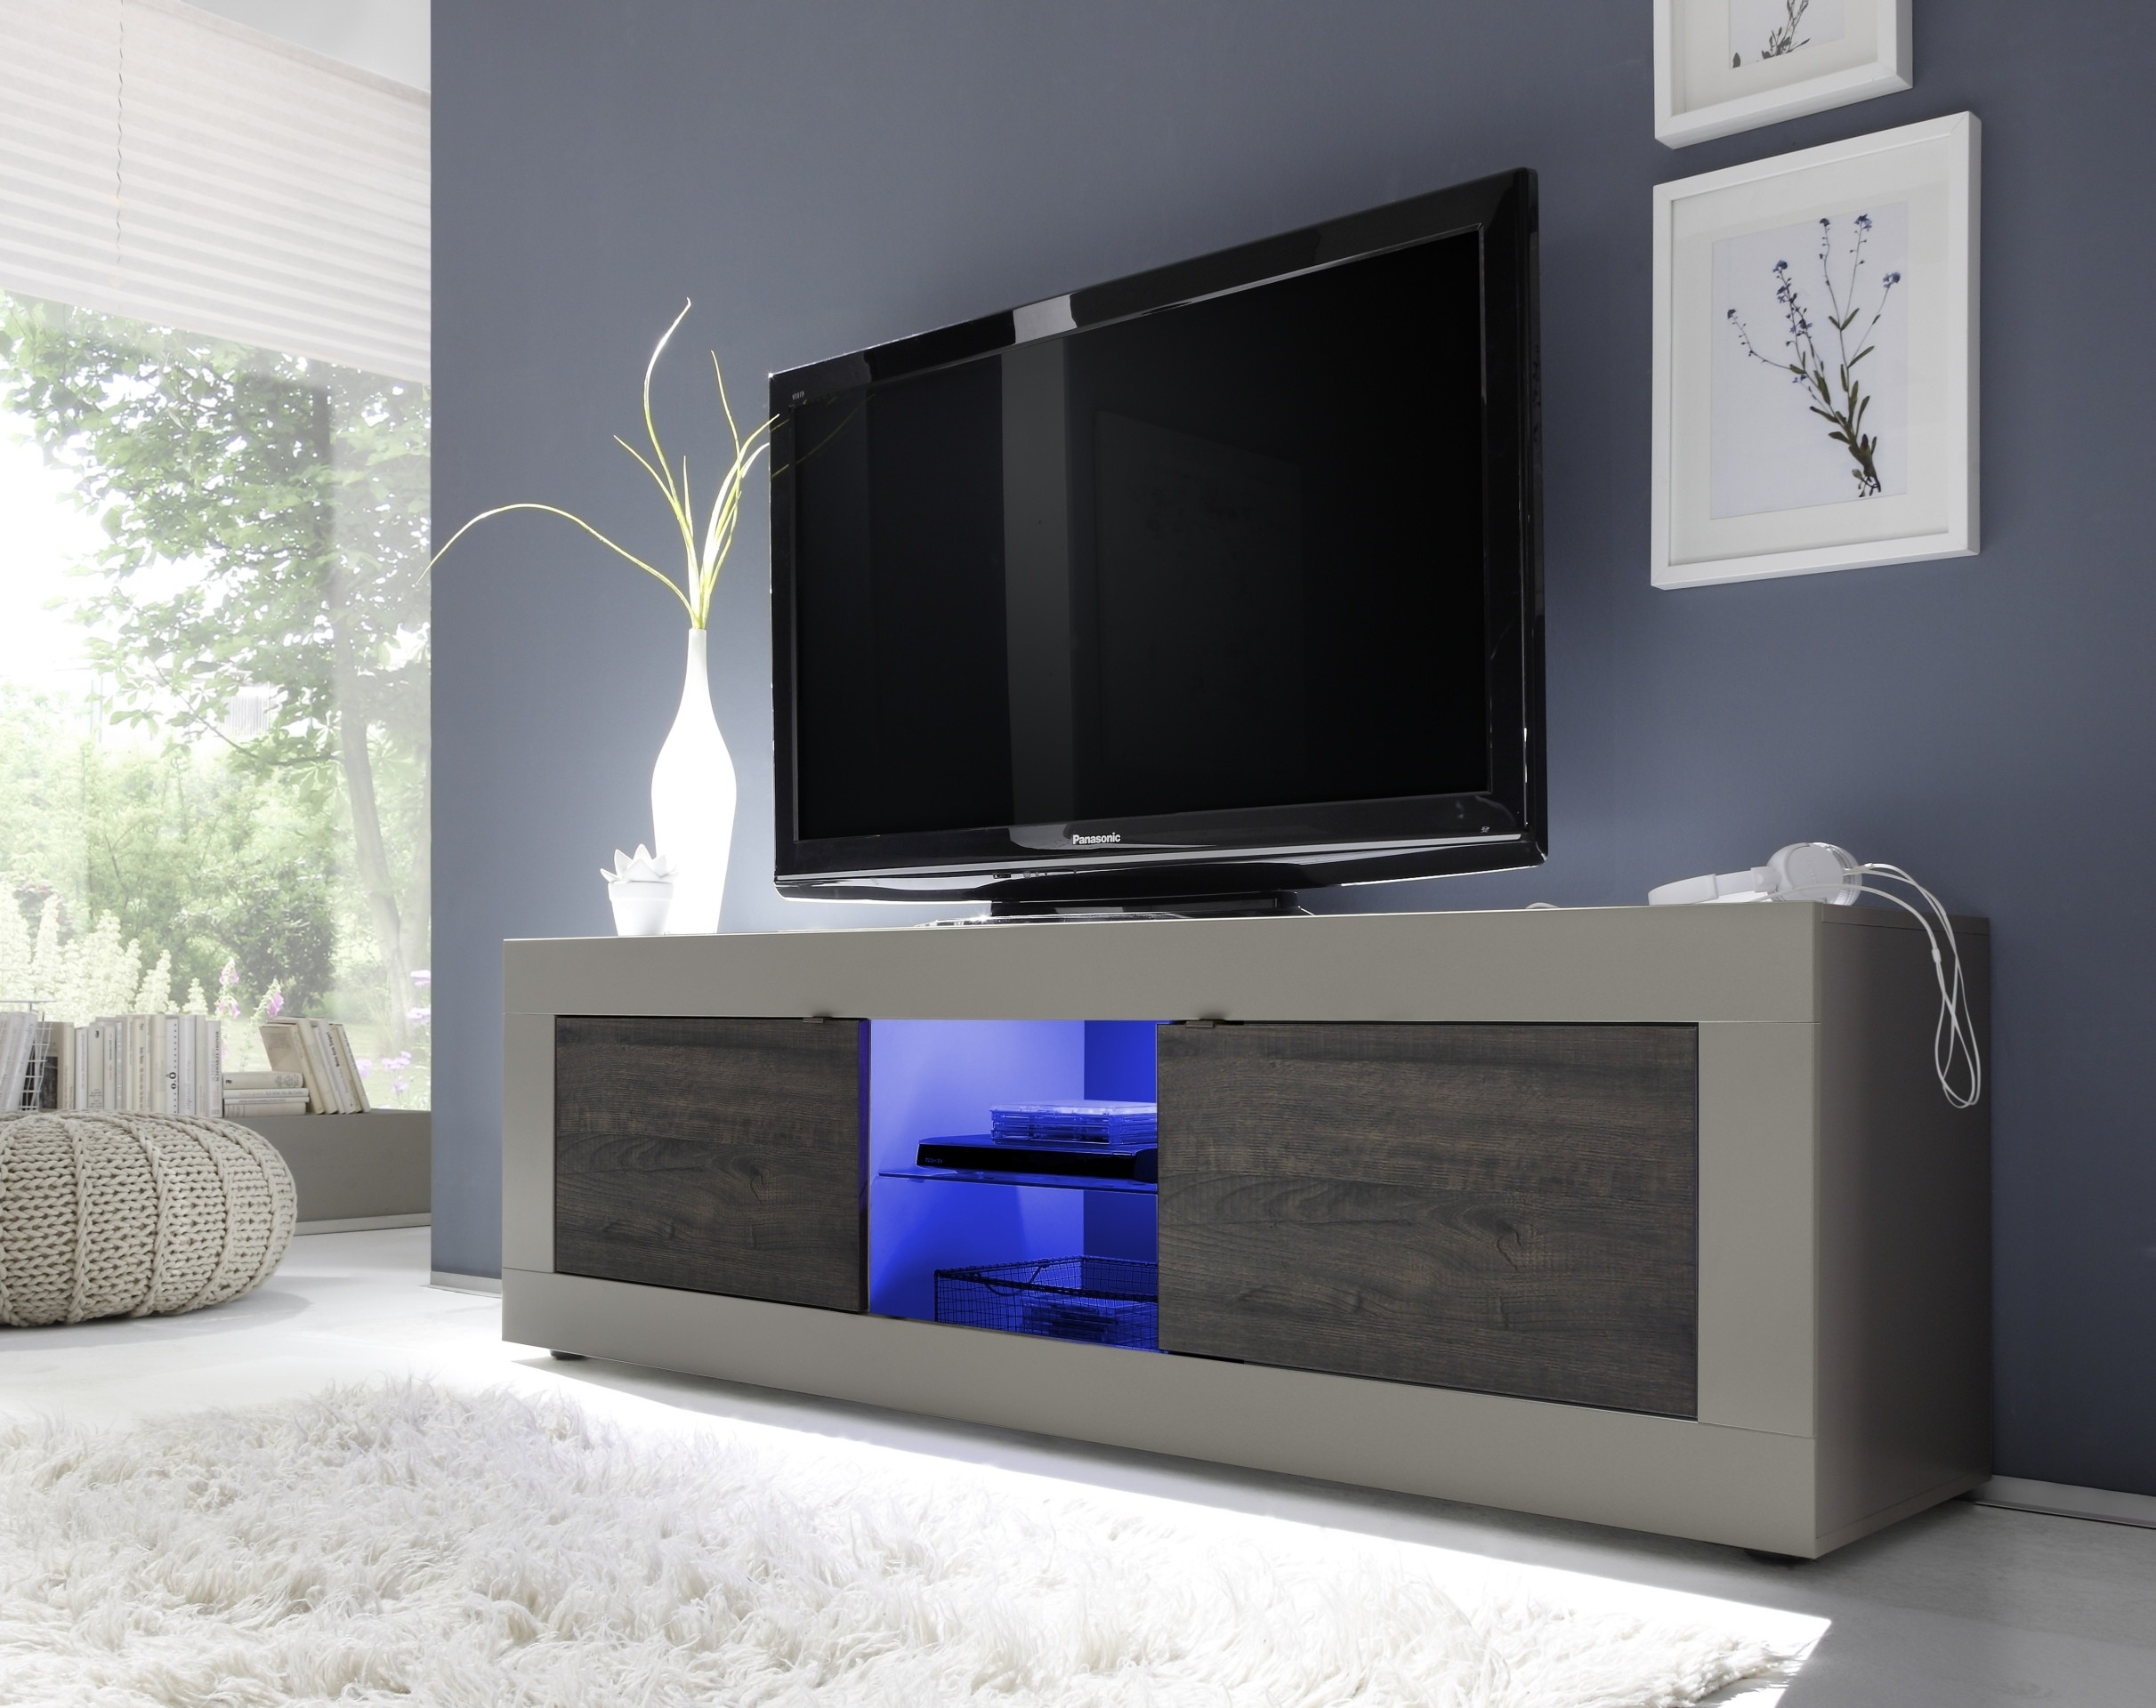 Dolcevita Ii Modern Tv Stand In Matt Finish Tv Stands Sena Within Bespoke Tv Stands (View 5 of 15)